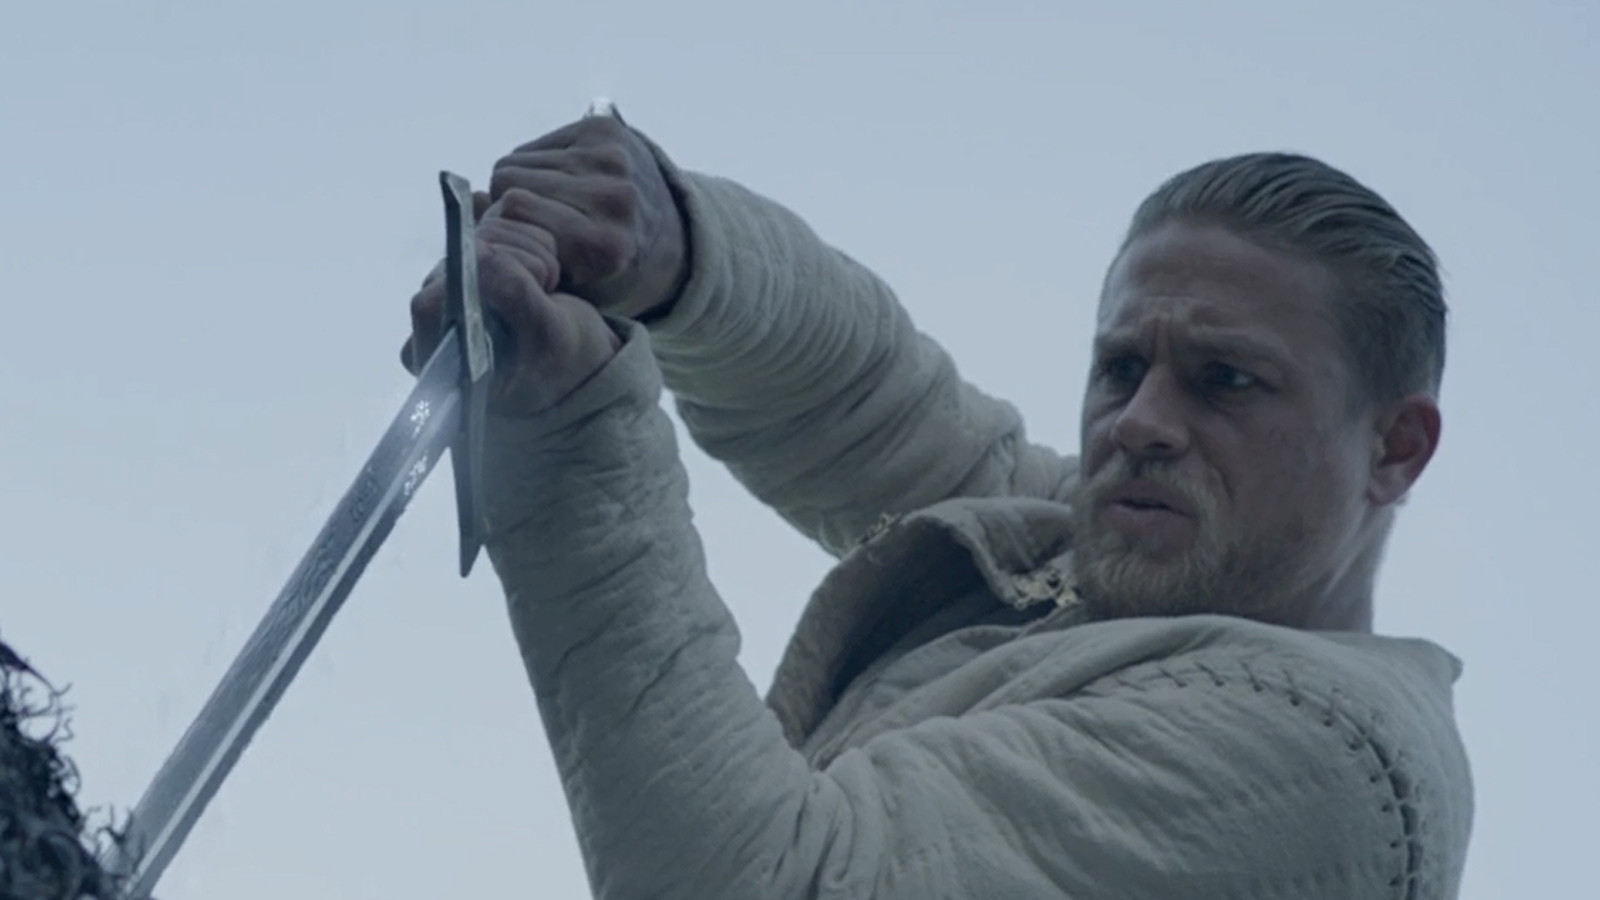 la-et-mn-king-arthur-legend-of-the-sword-trailer